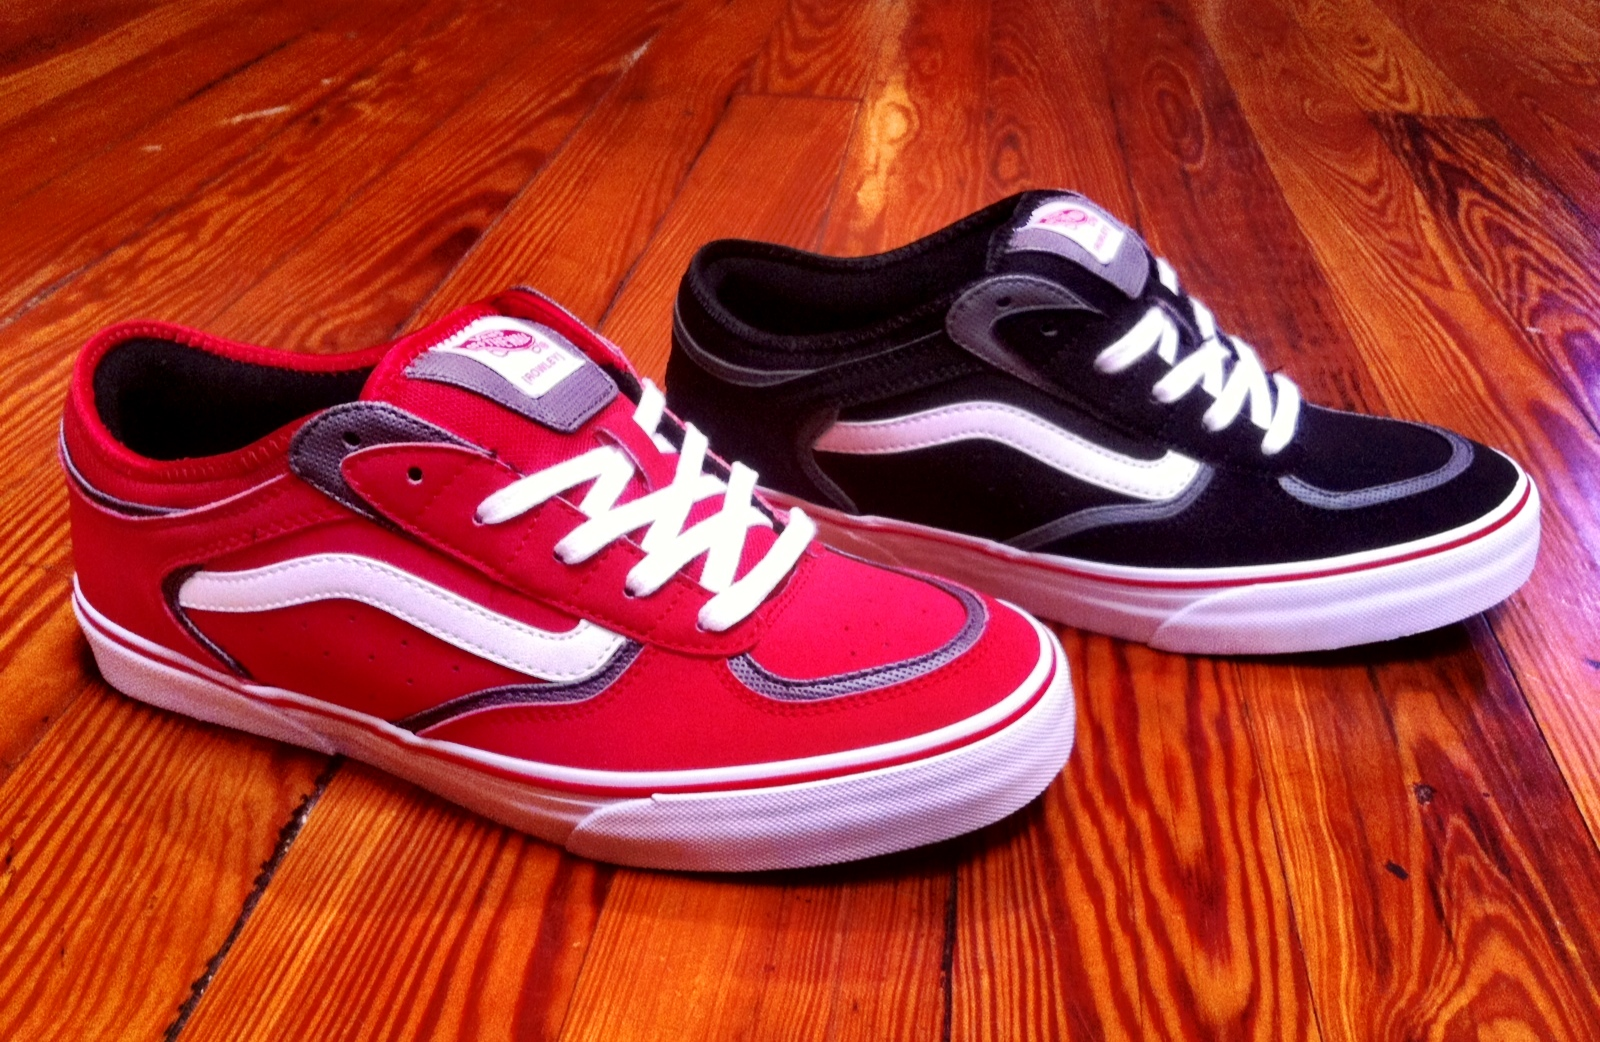 e26b6922c2 RELIEF SKATE SUPPLY  VANS ROWLEY PRO CLASSICS NOW AVAILABLE